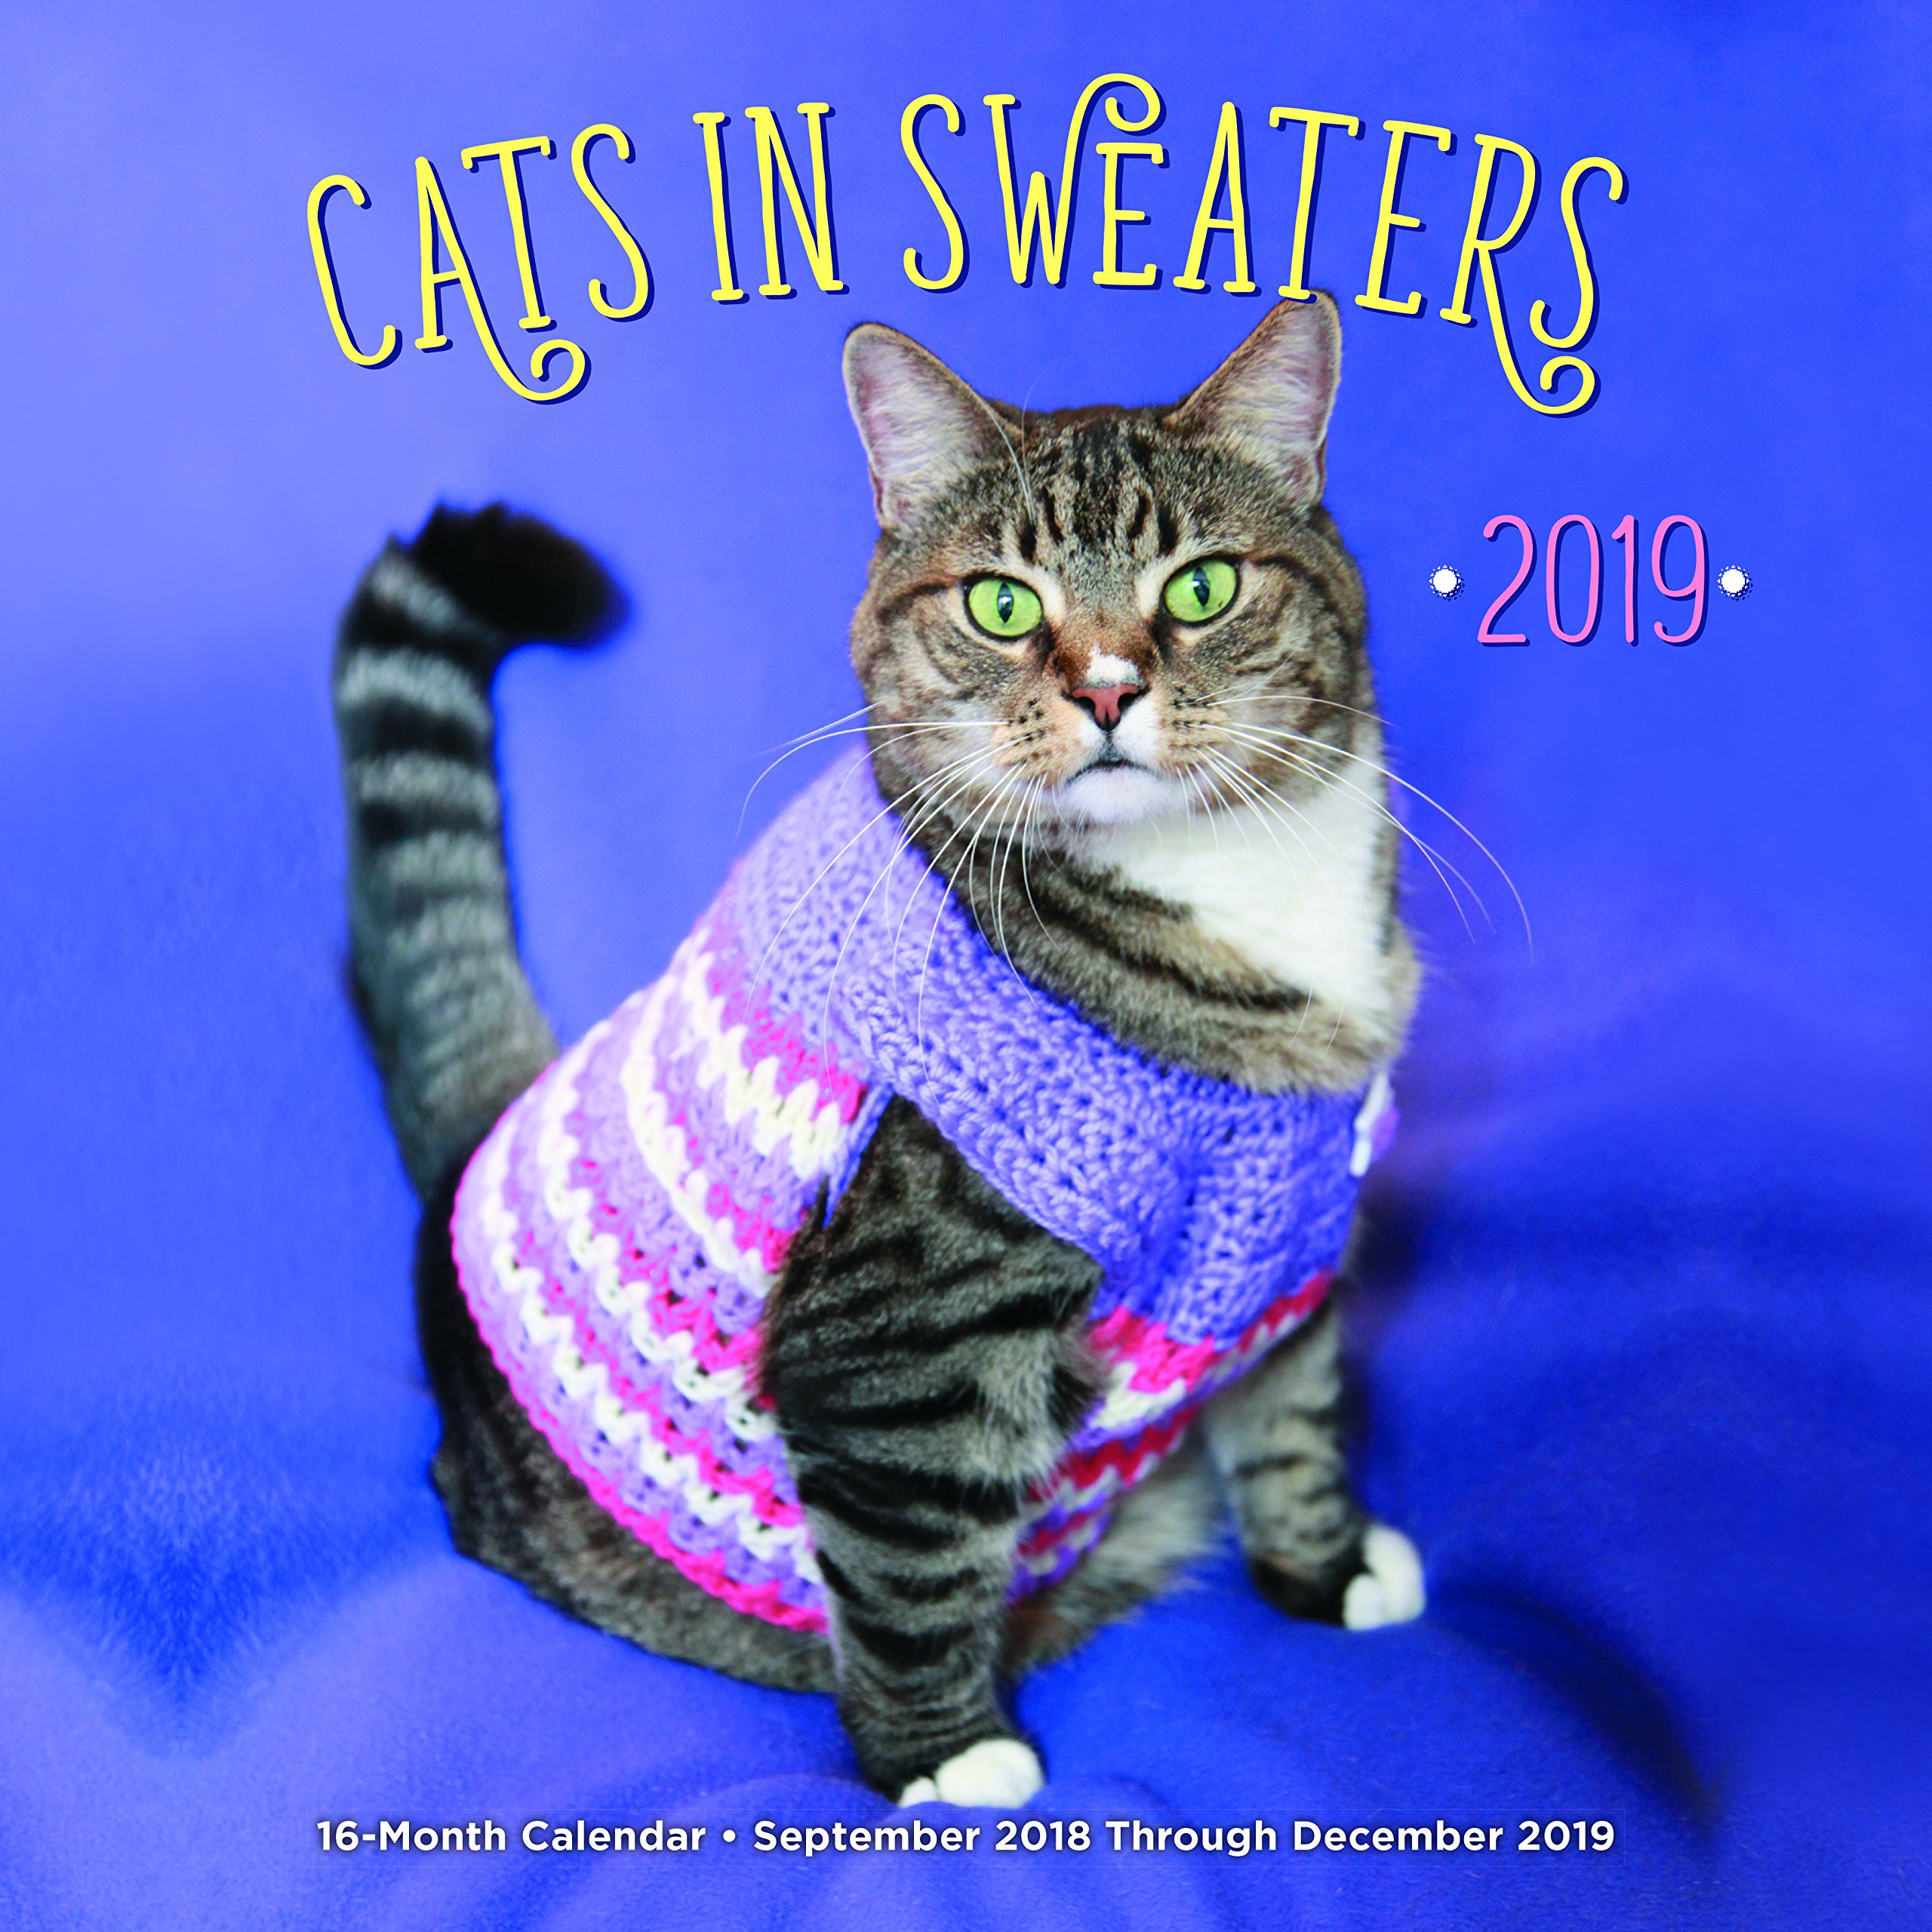 Cats In Sweaters 2019: 16-Month Calendar - September 2018 through December  2019: Editors of Rock Point: 9781631064678: Amazon.com: Books